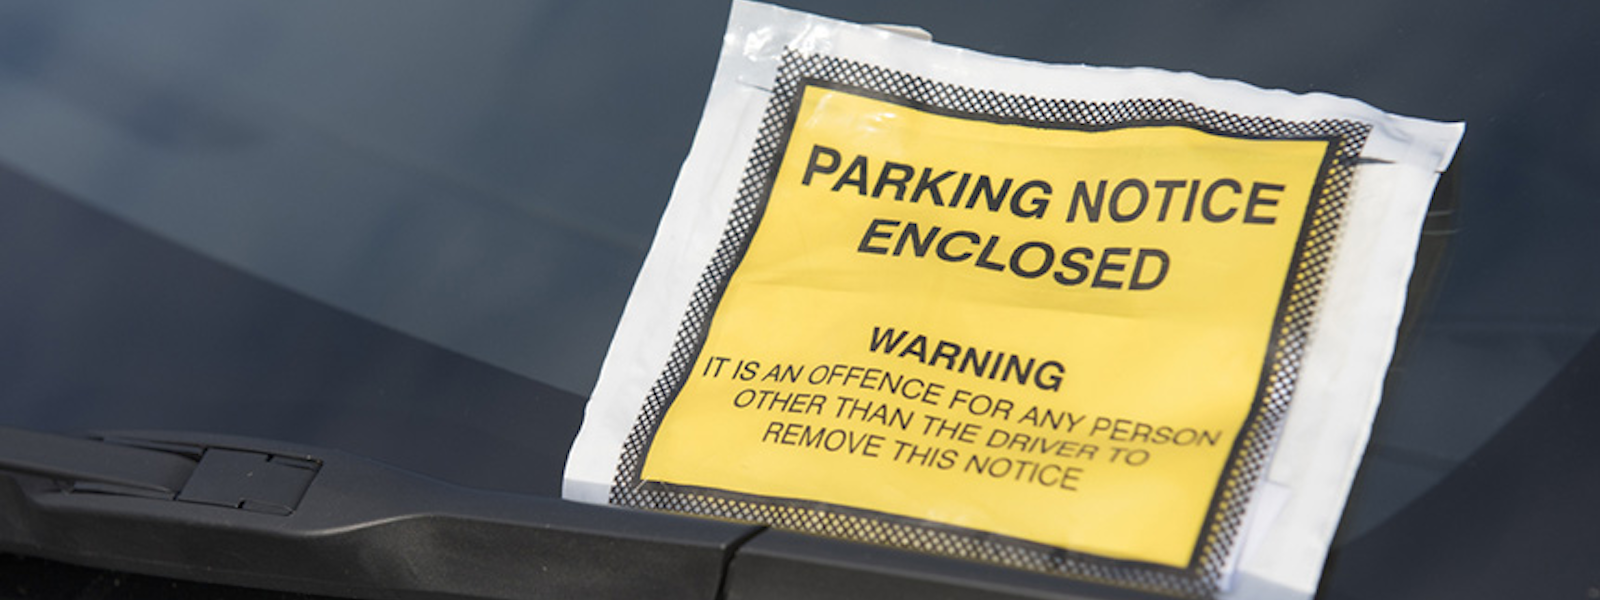 This Minor Parking Error Could Cost You Hundreds!